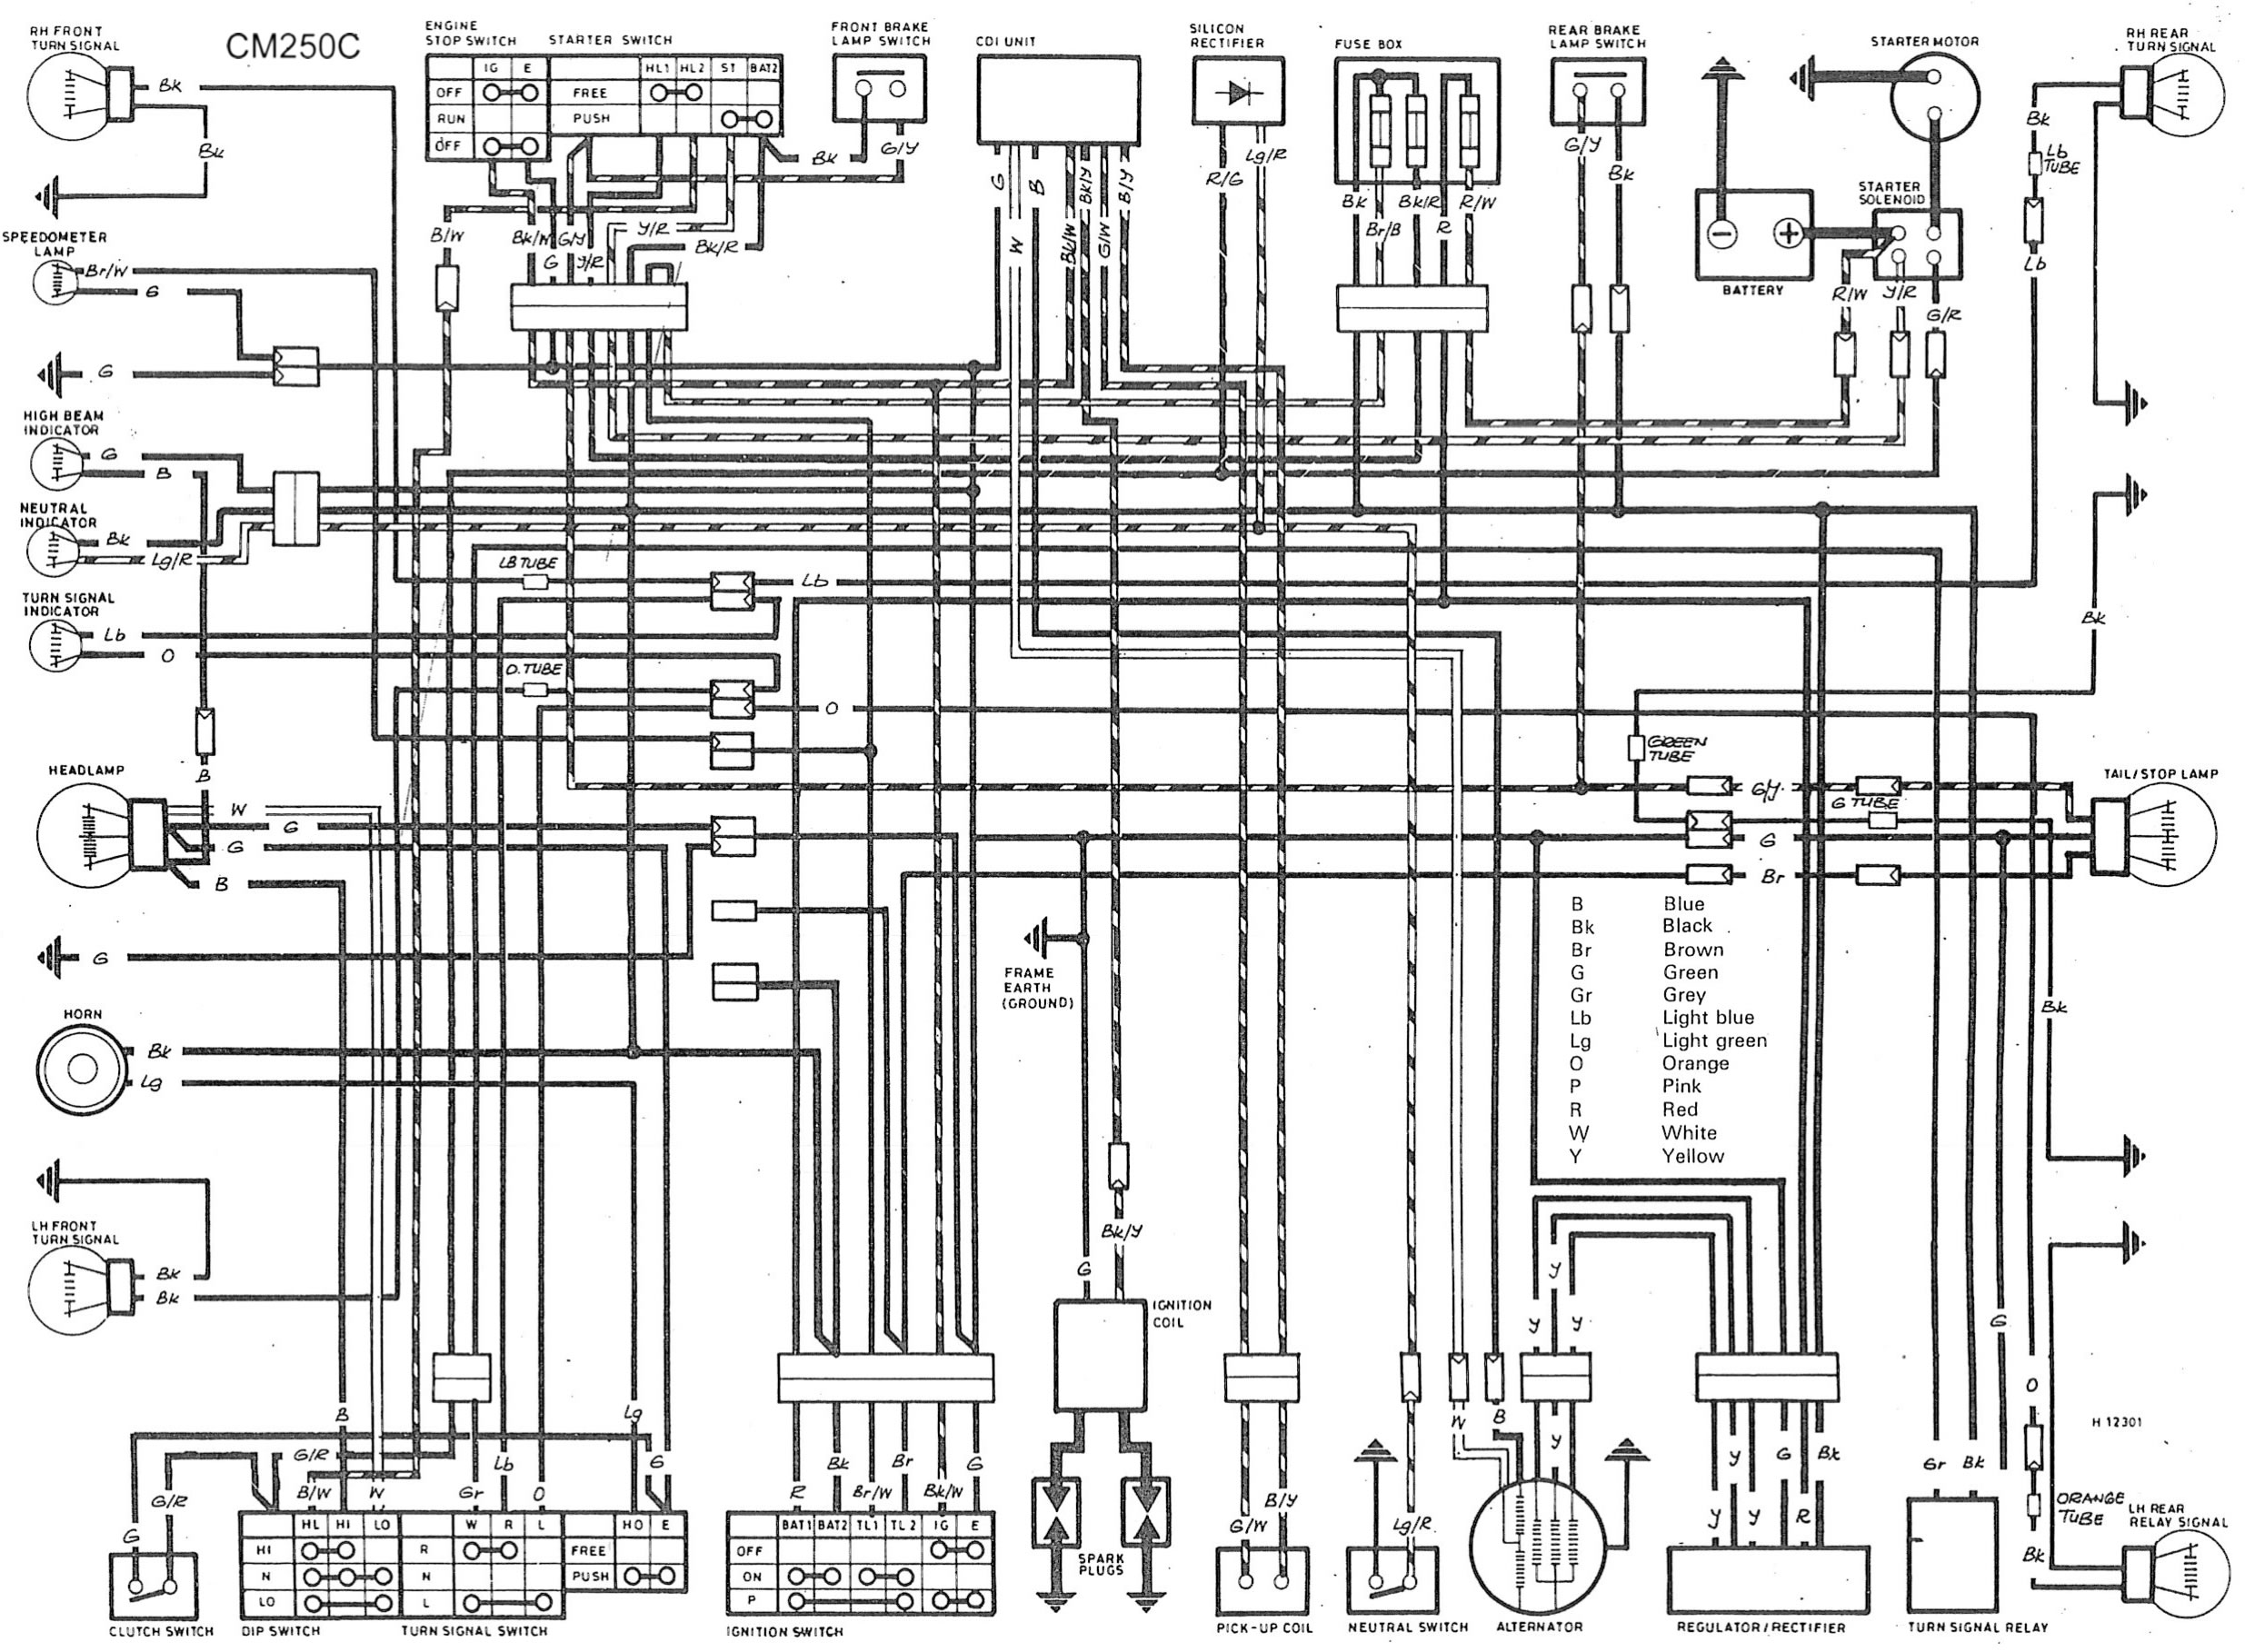 1971 Honda Ct90 Carb Diagram Schematics Wiring Diagrams 1968 Cm 250 Custom Motorcycle Cm250c Parts